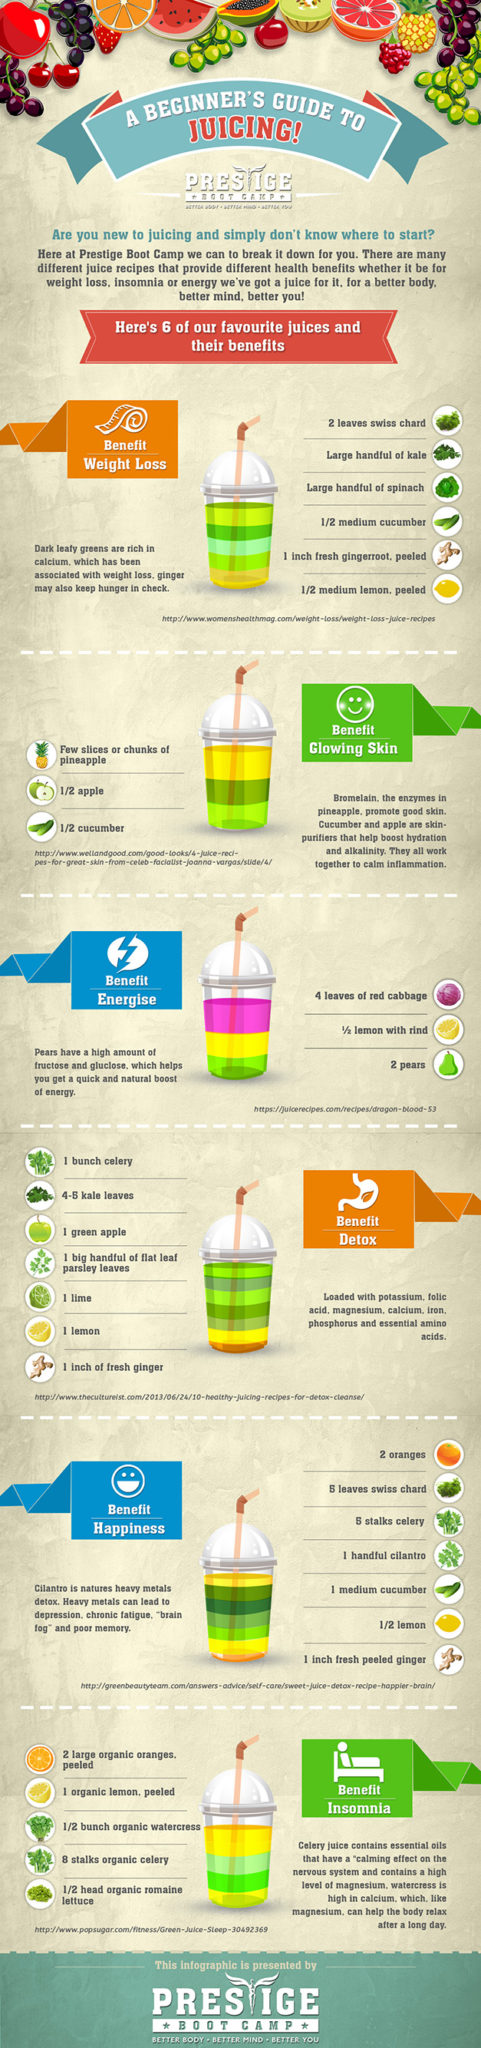 juicing-infographic